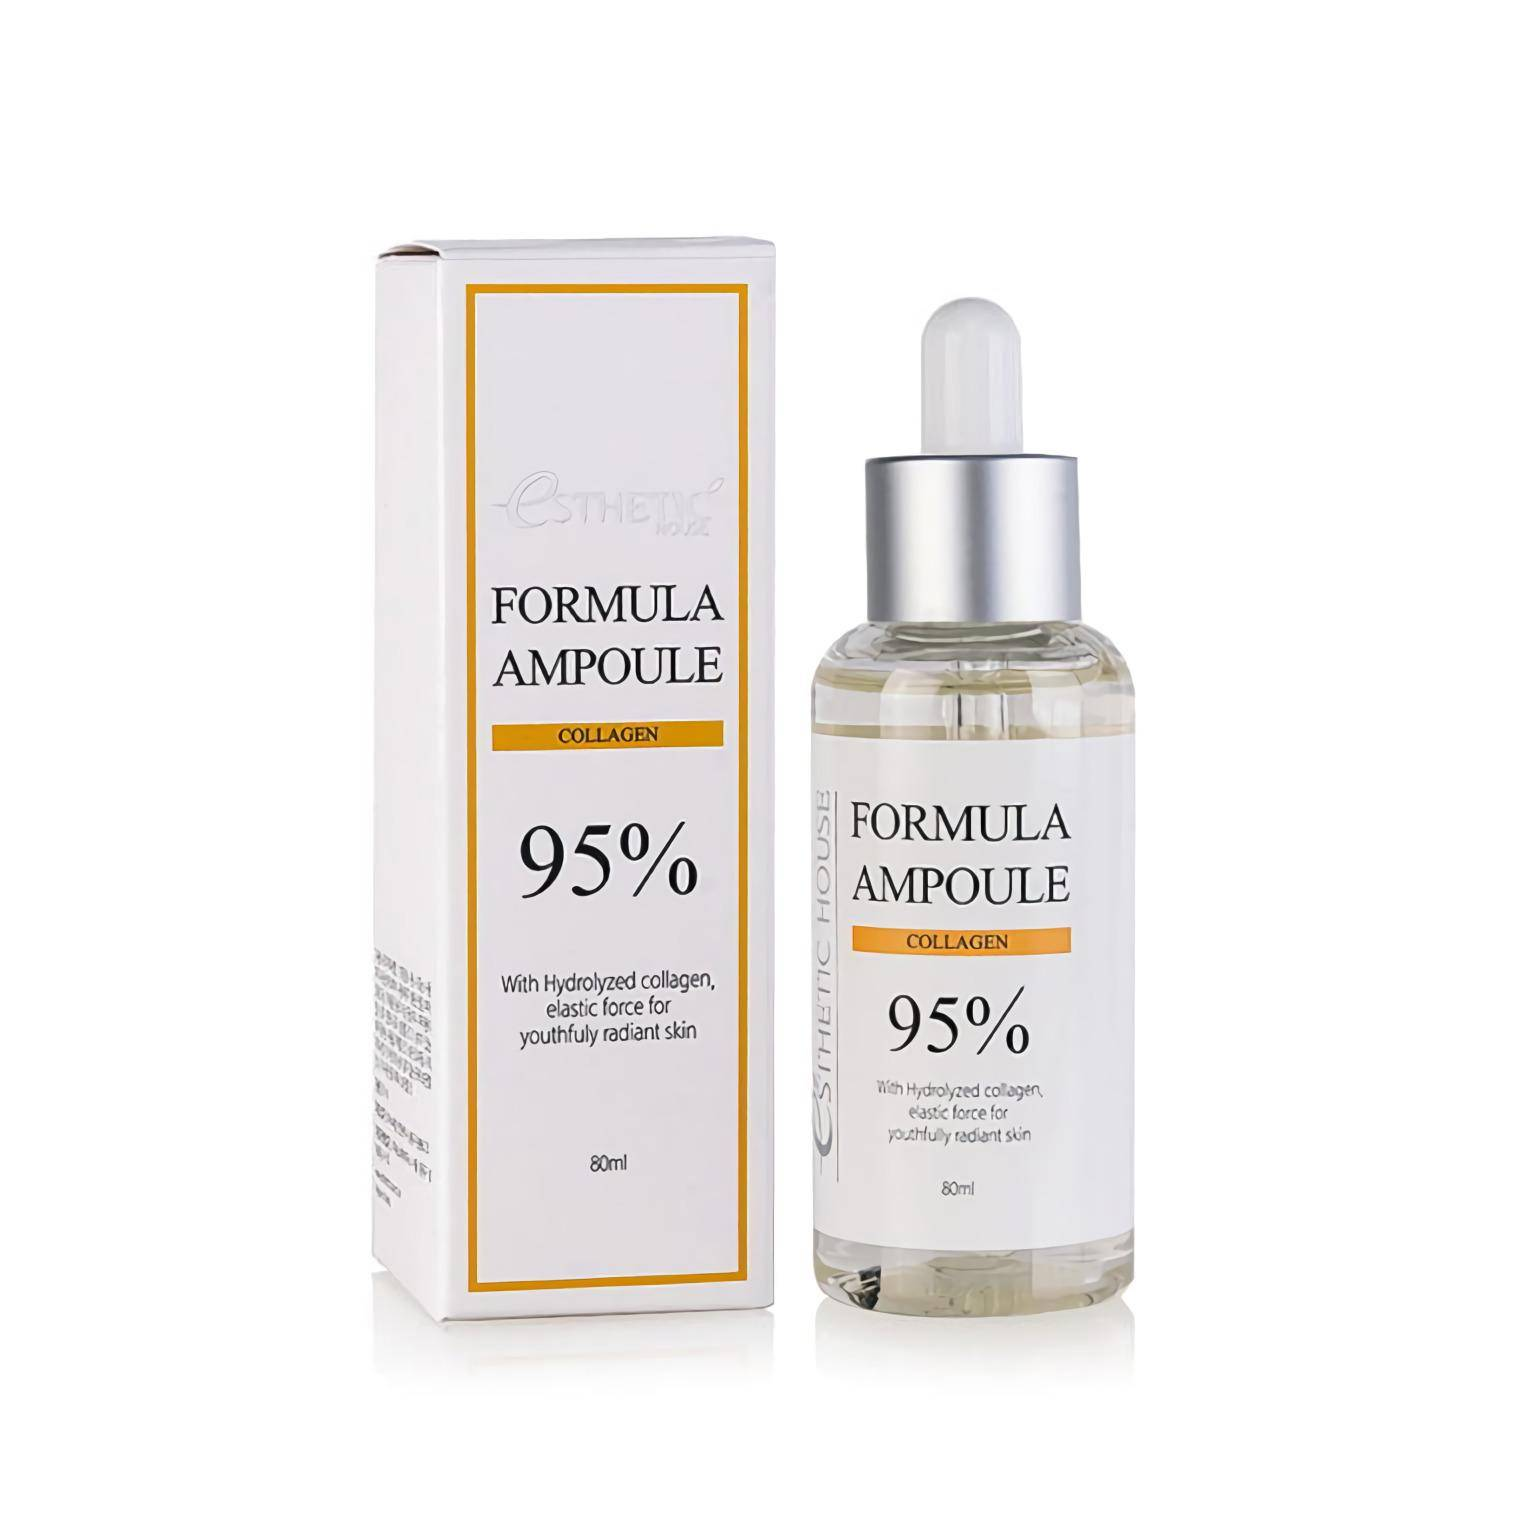 Esthetic House Formula Ampoule Collagen